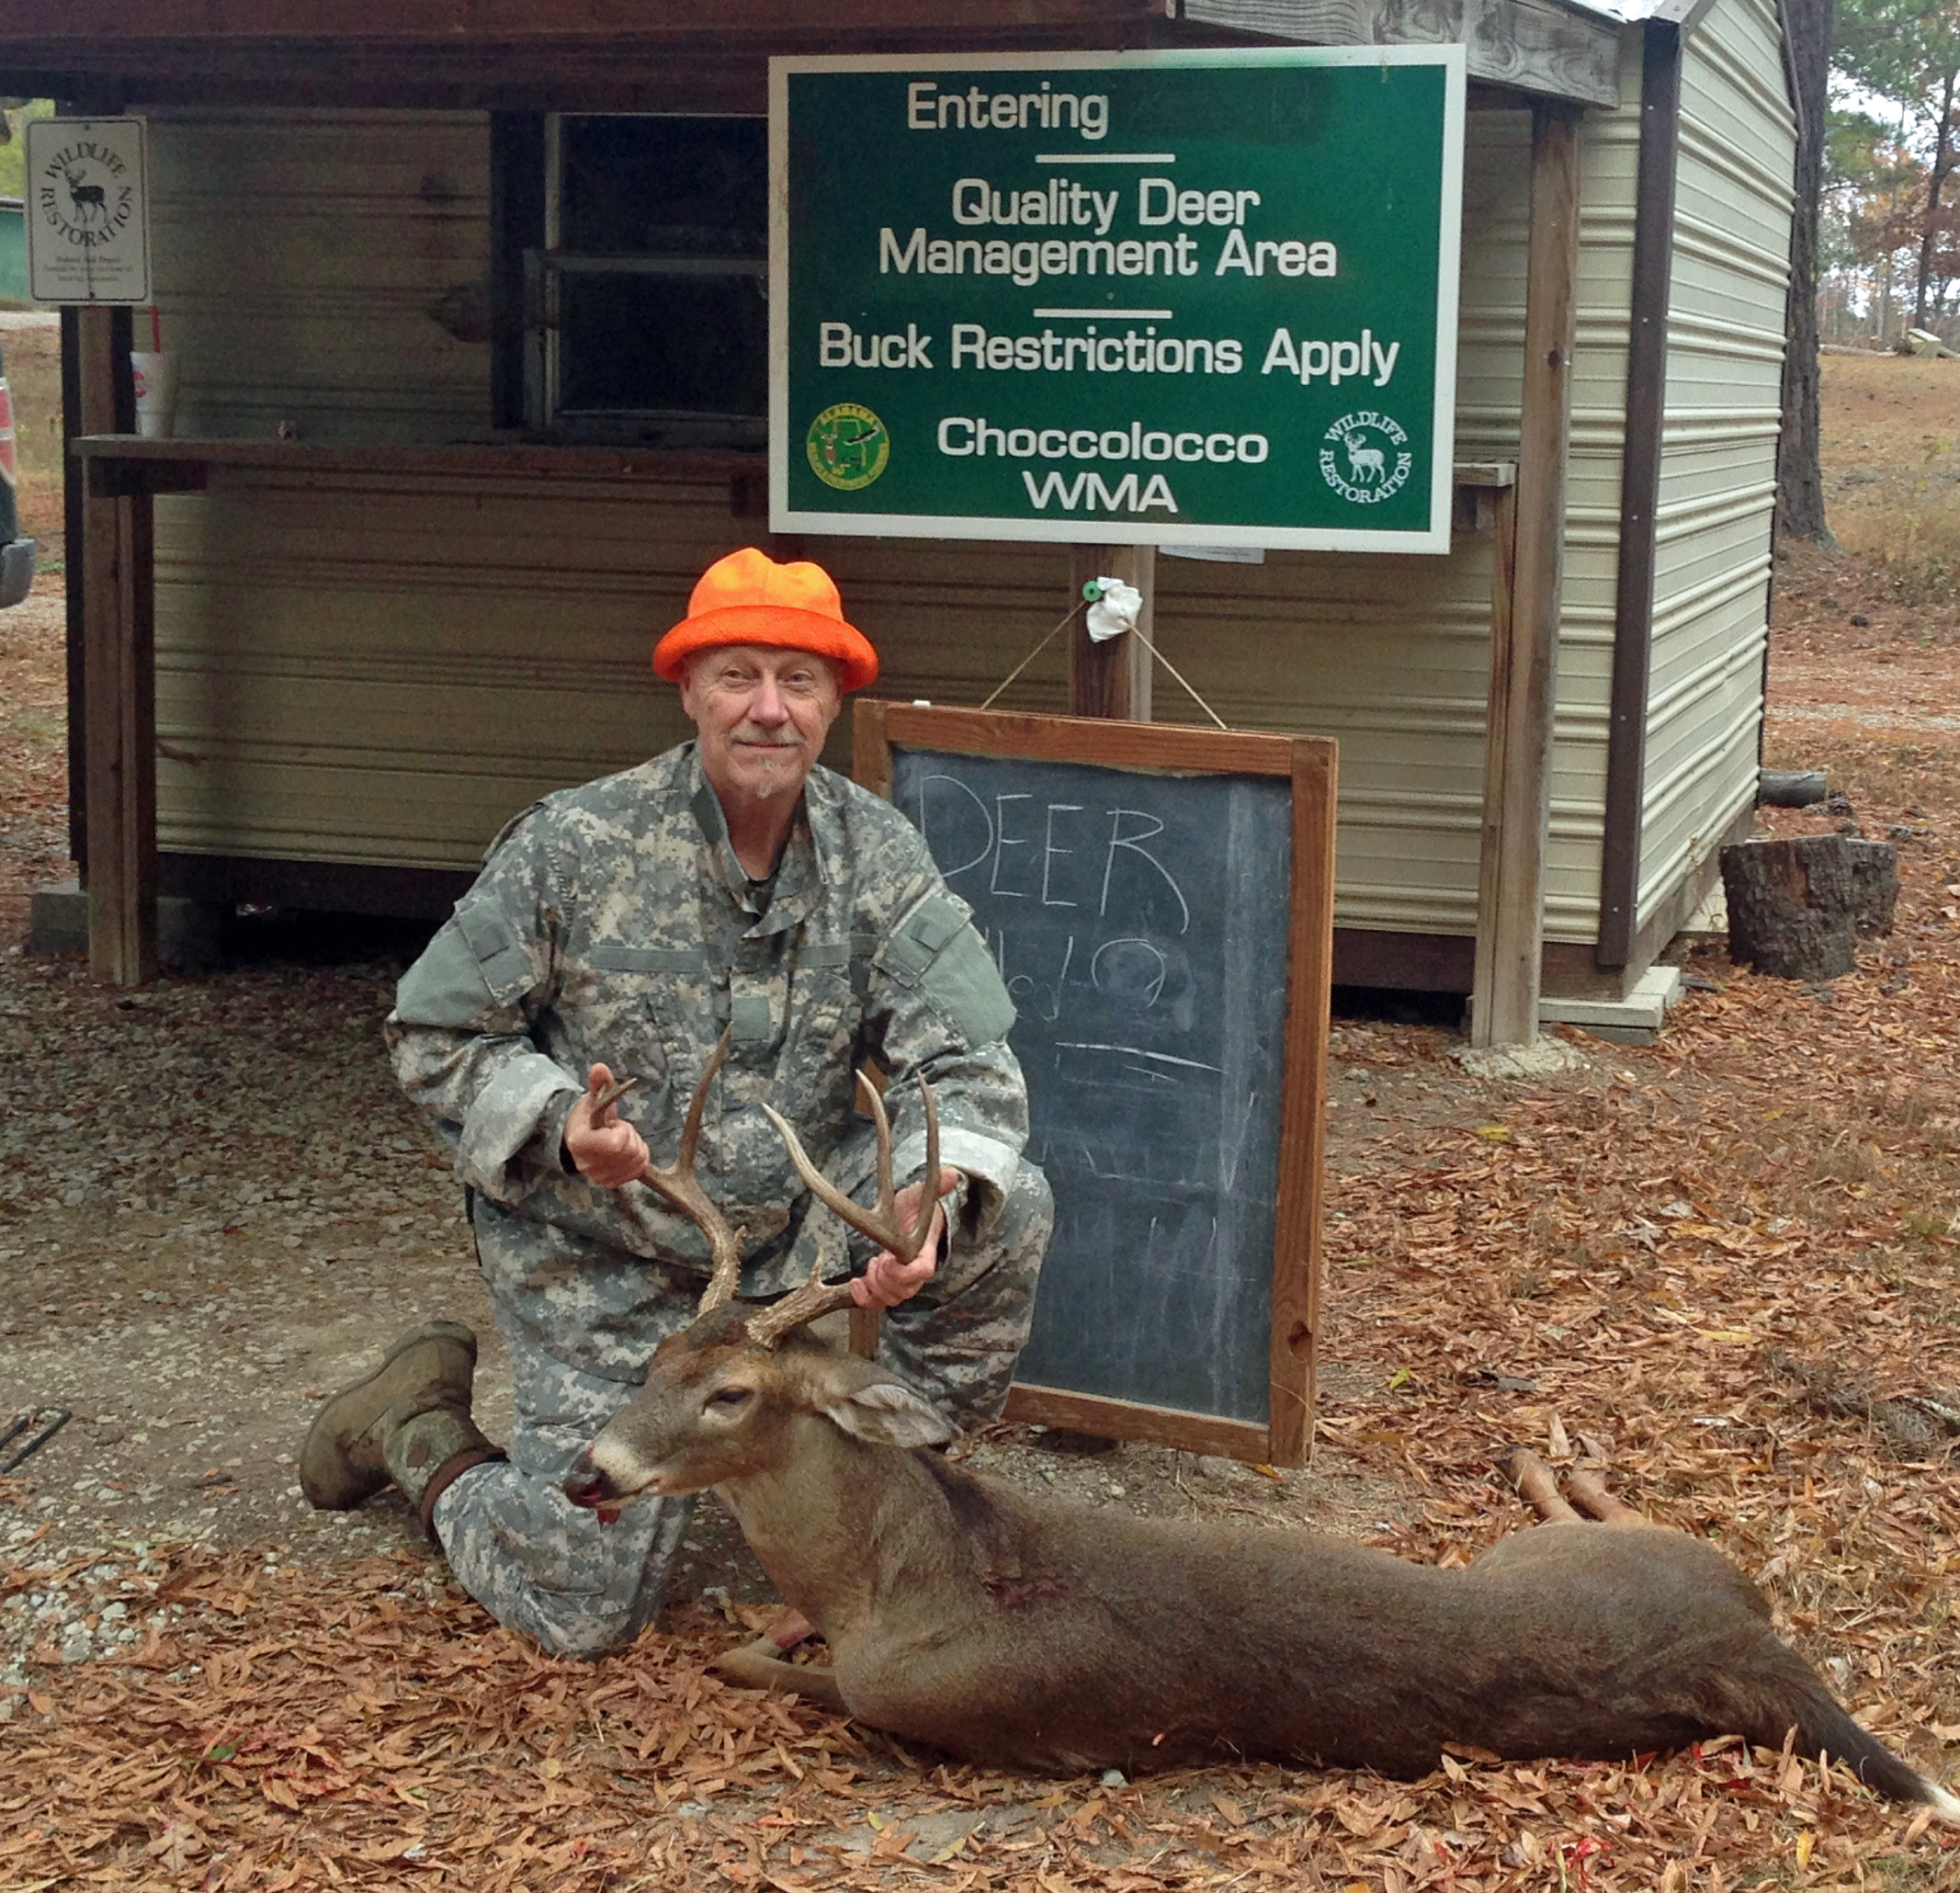 Alabama WMA Hunting on a Budget | Great Days Outdoors